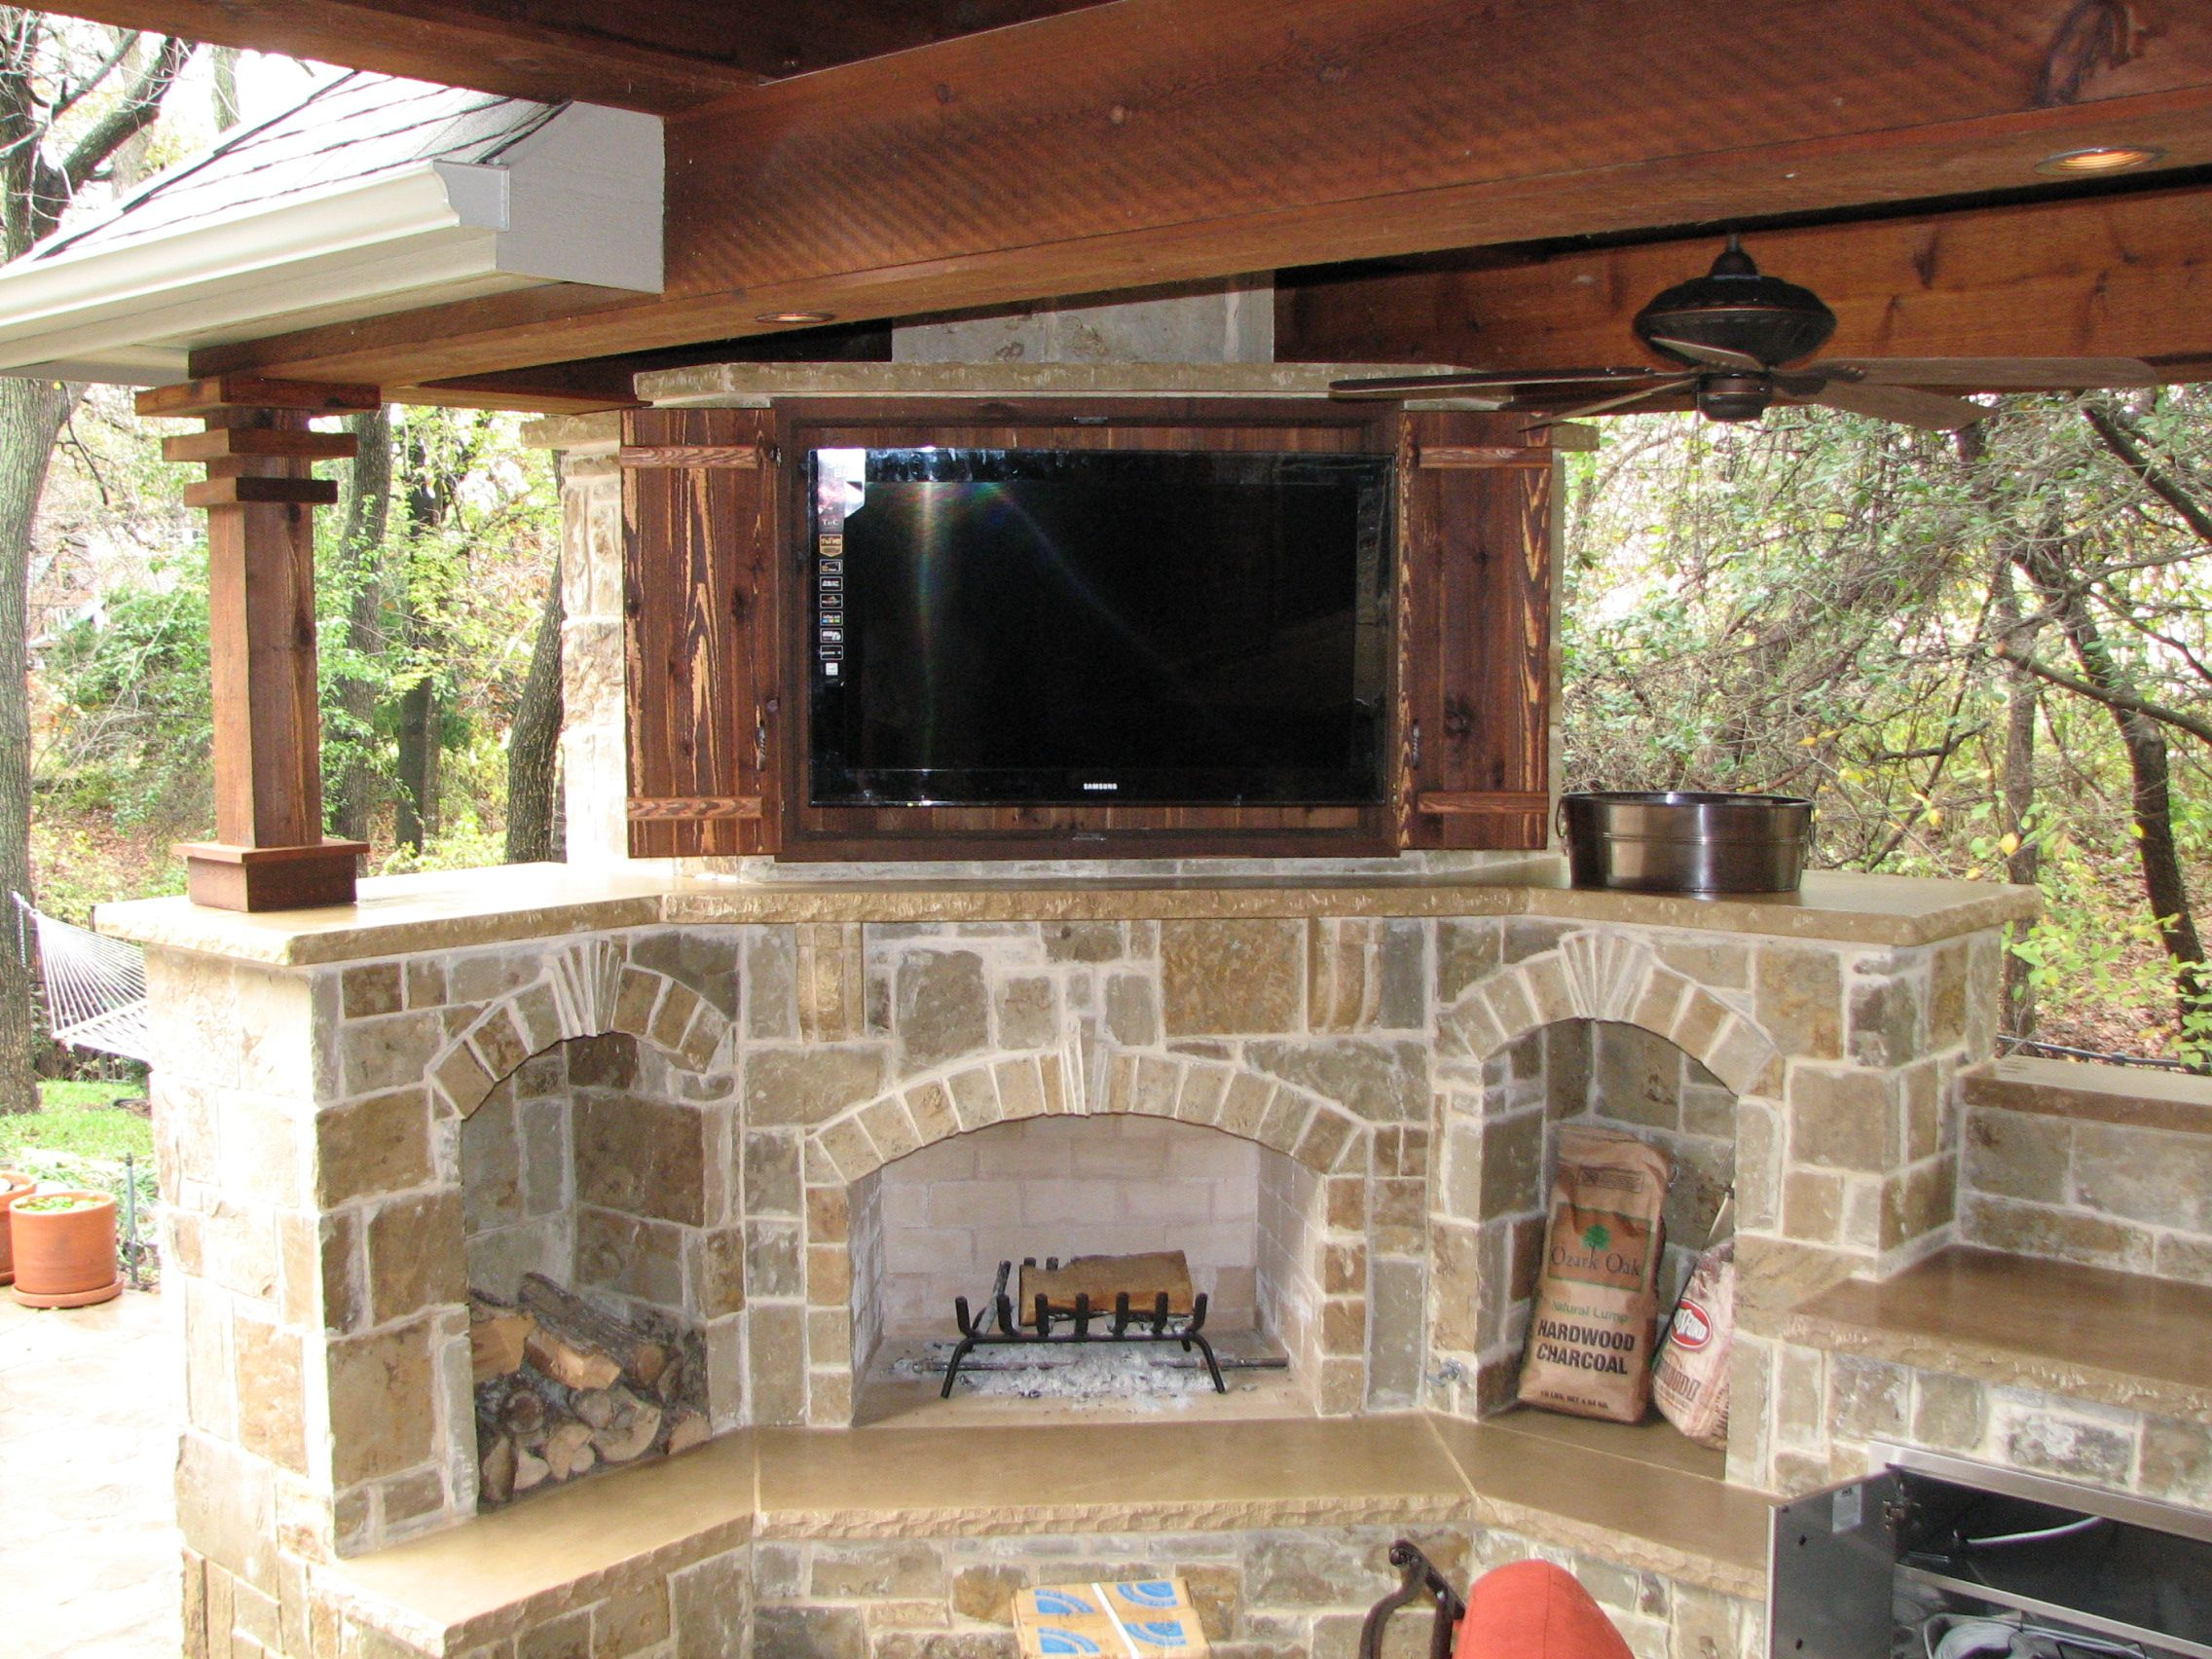 Rustic Outdoor Storage Cabinets With Doors Above Fireplace Design For Tv  Cabinet With Remote Control